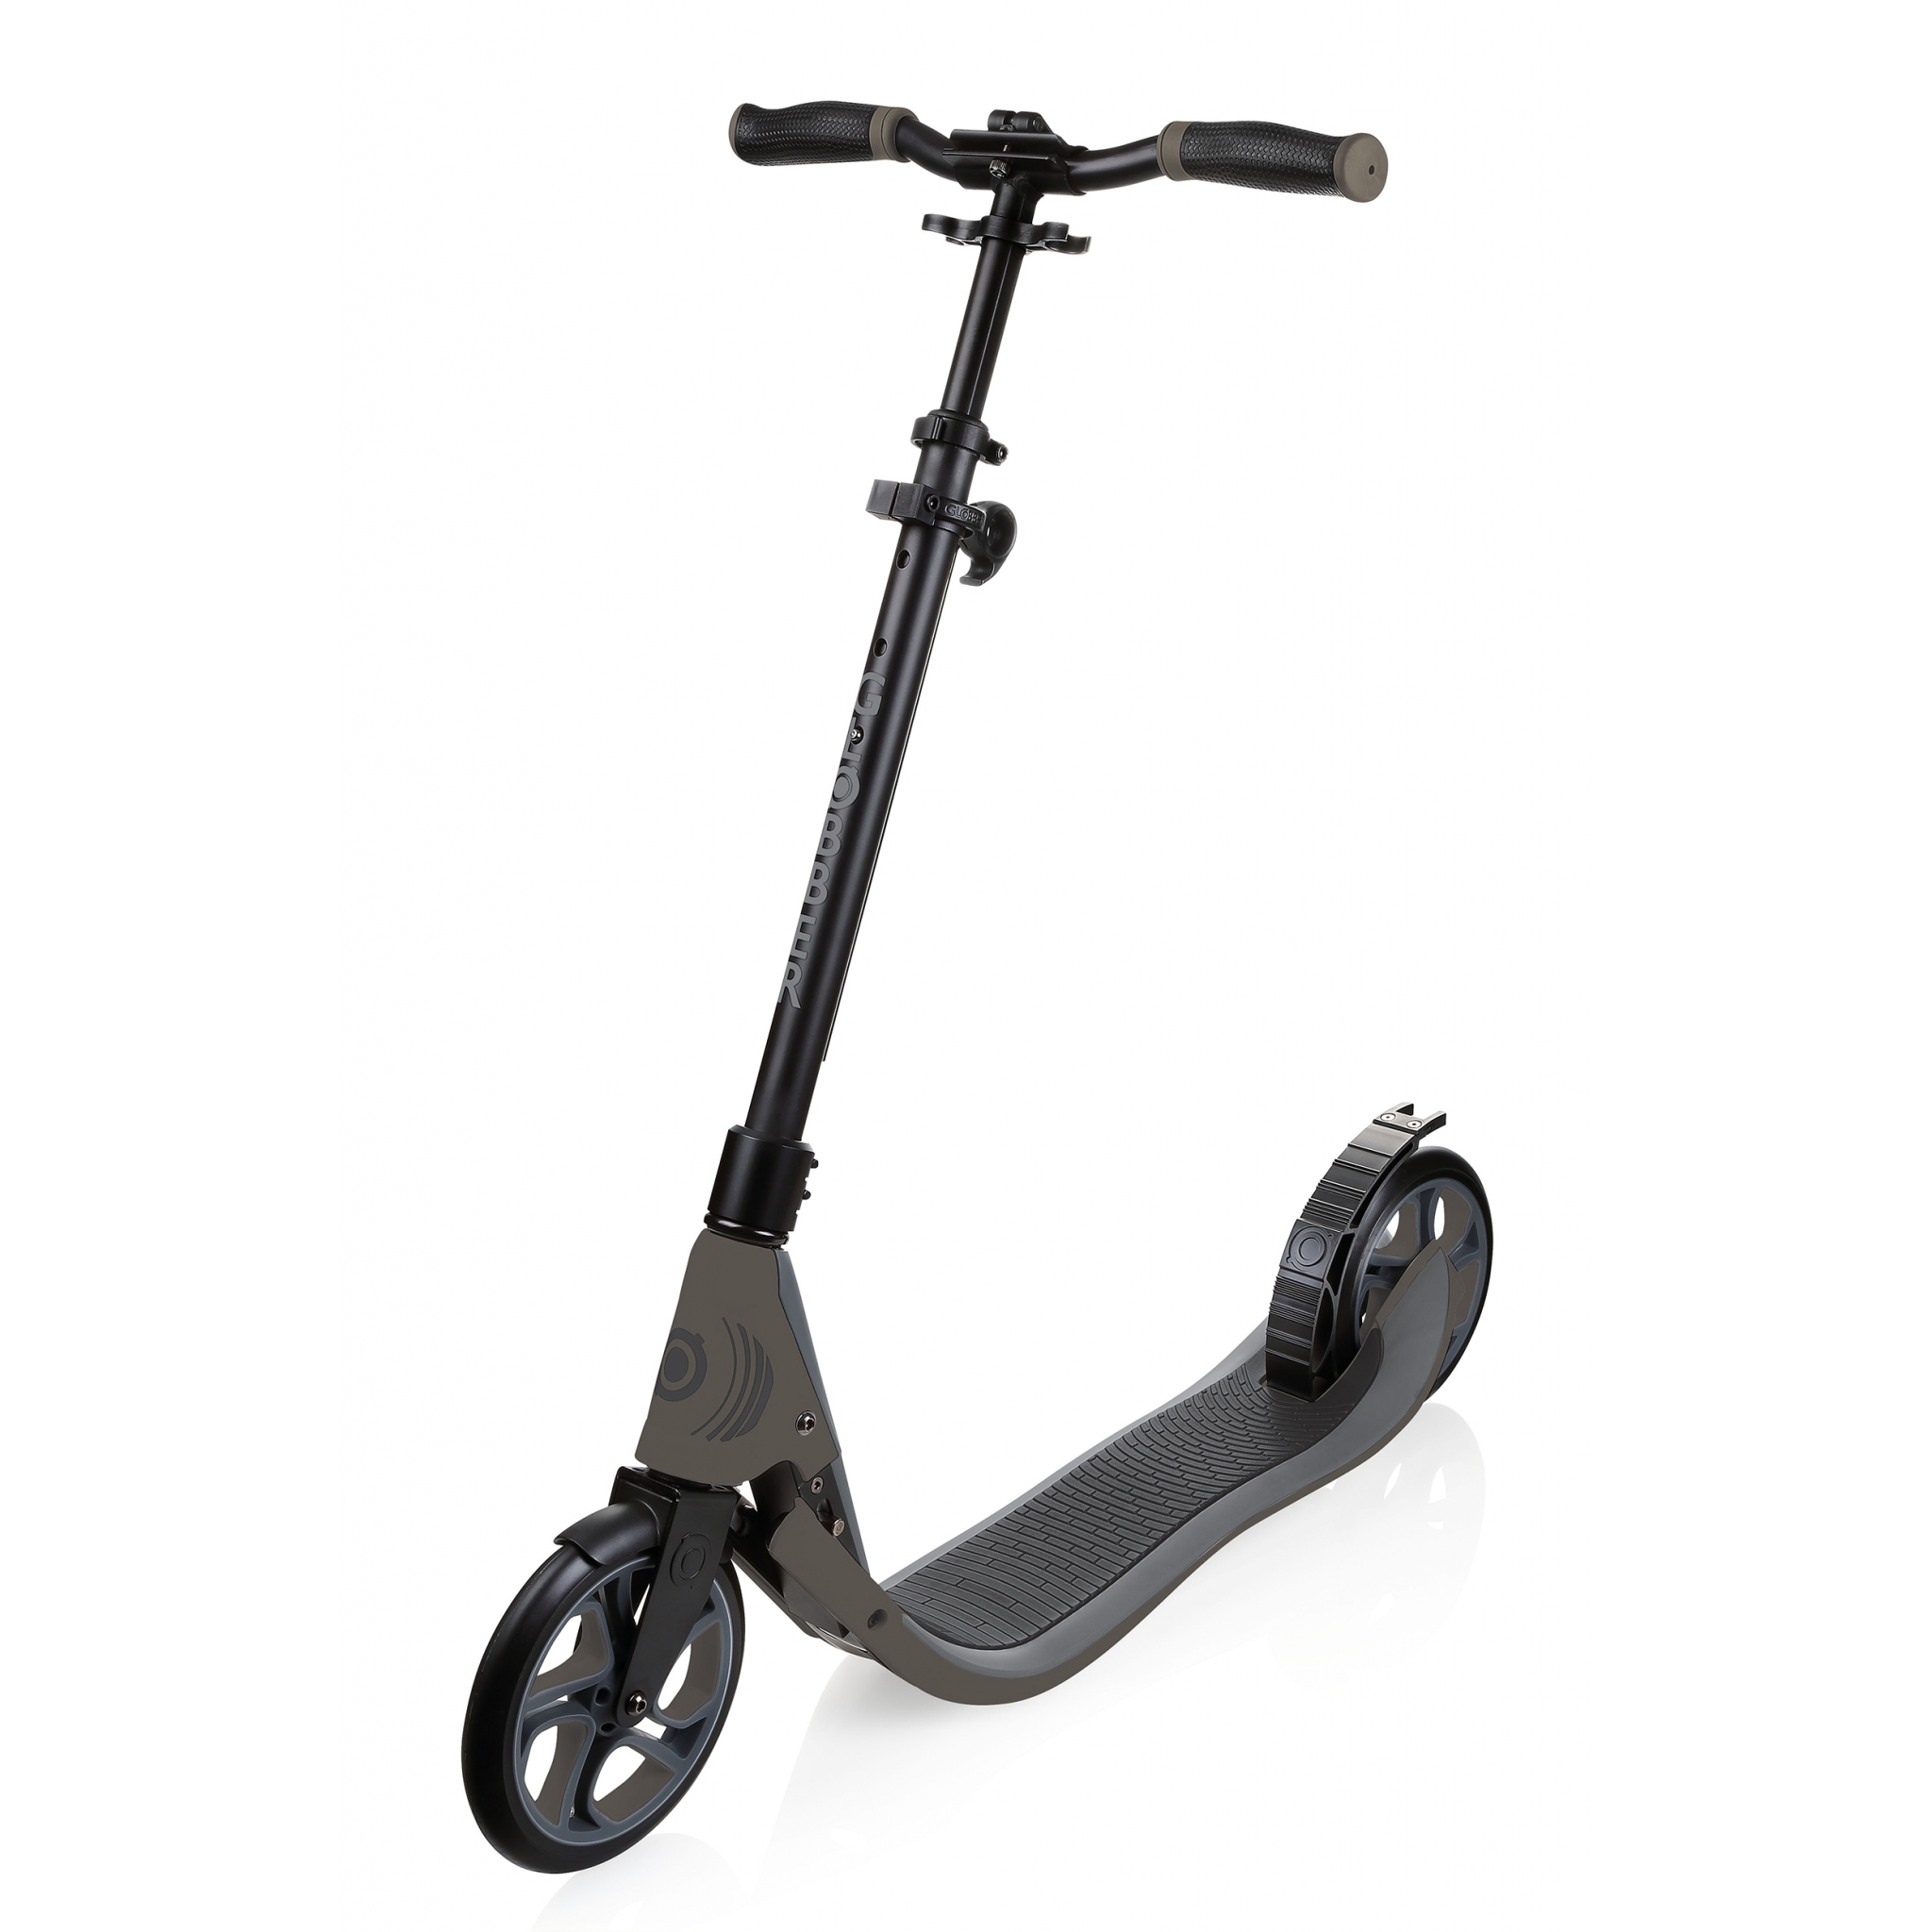 2-wheel foldable scooter for adults - Globber ONE NL 205